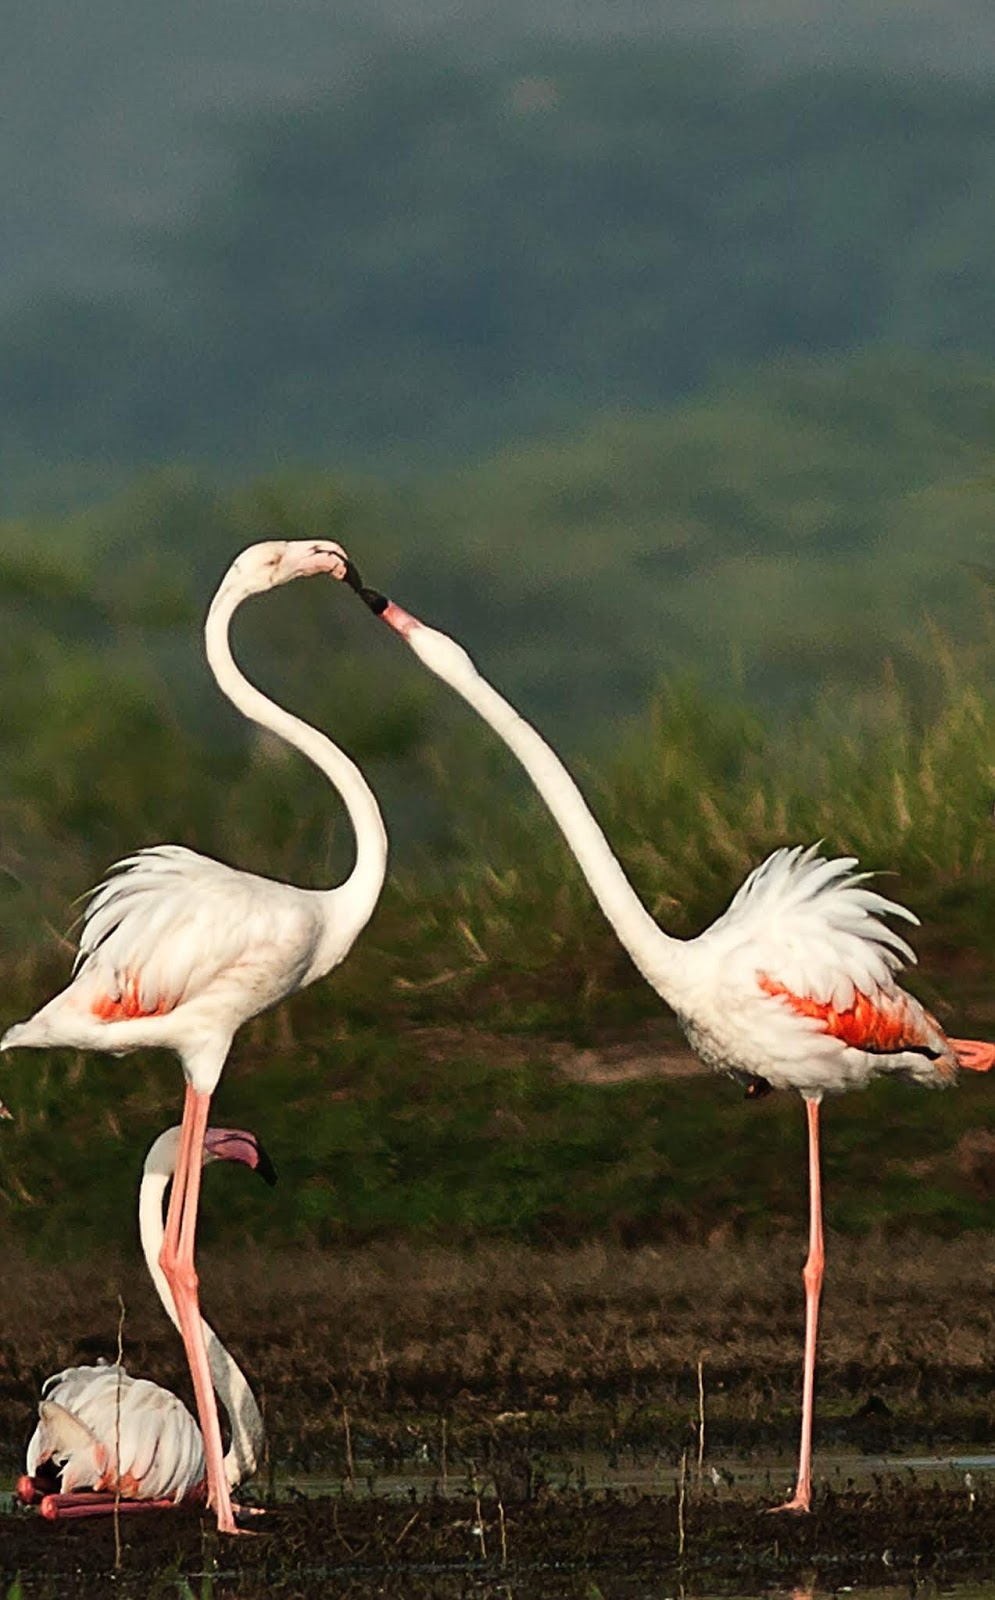 Flamingos in love.